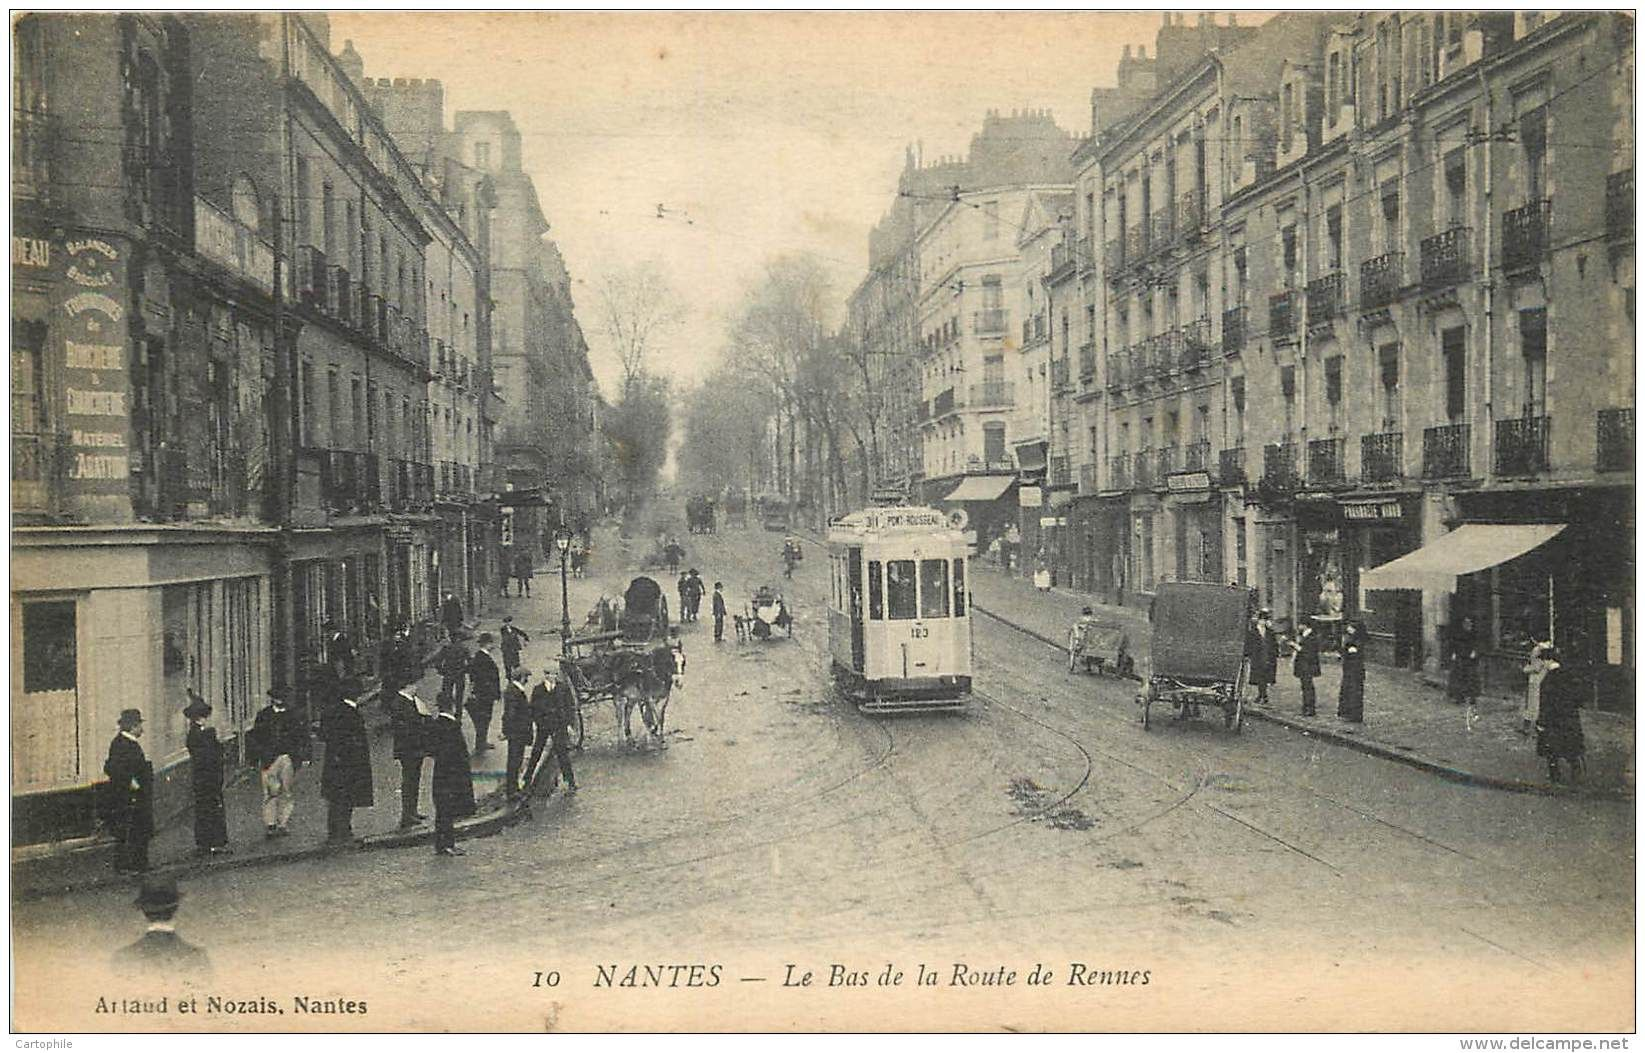 44 nantes bas de la route de rennes 1915 tramway nantes pinterest nantes rennes et. Black Bedroom Furniture Sets. Home Design Ideas